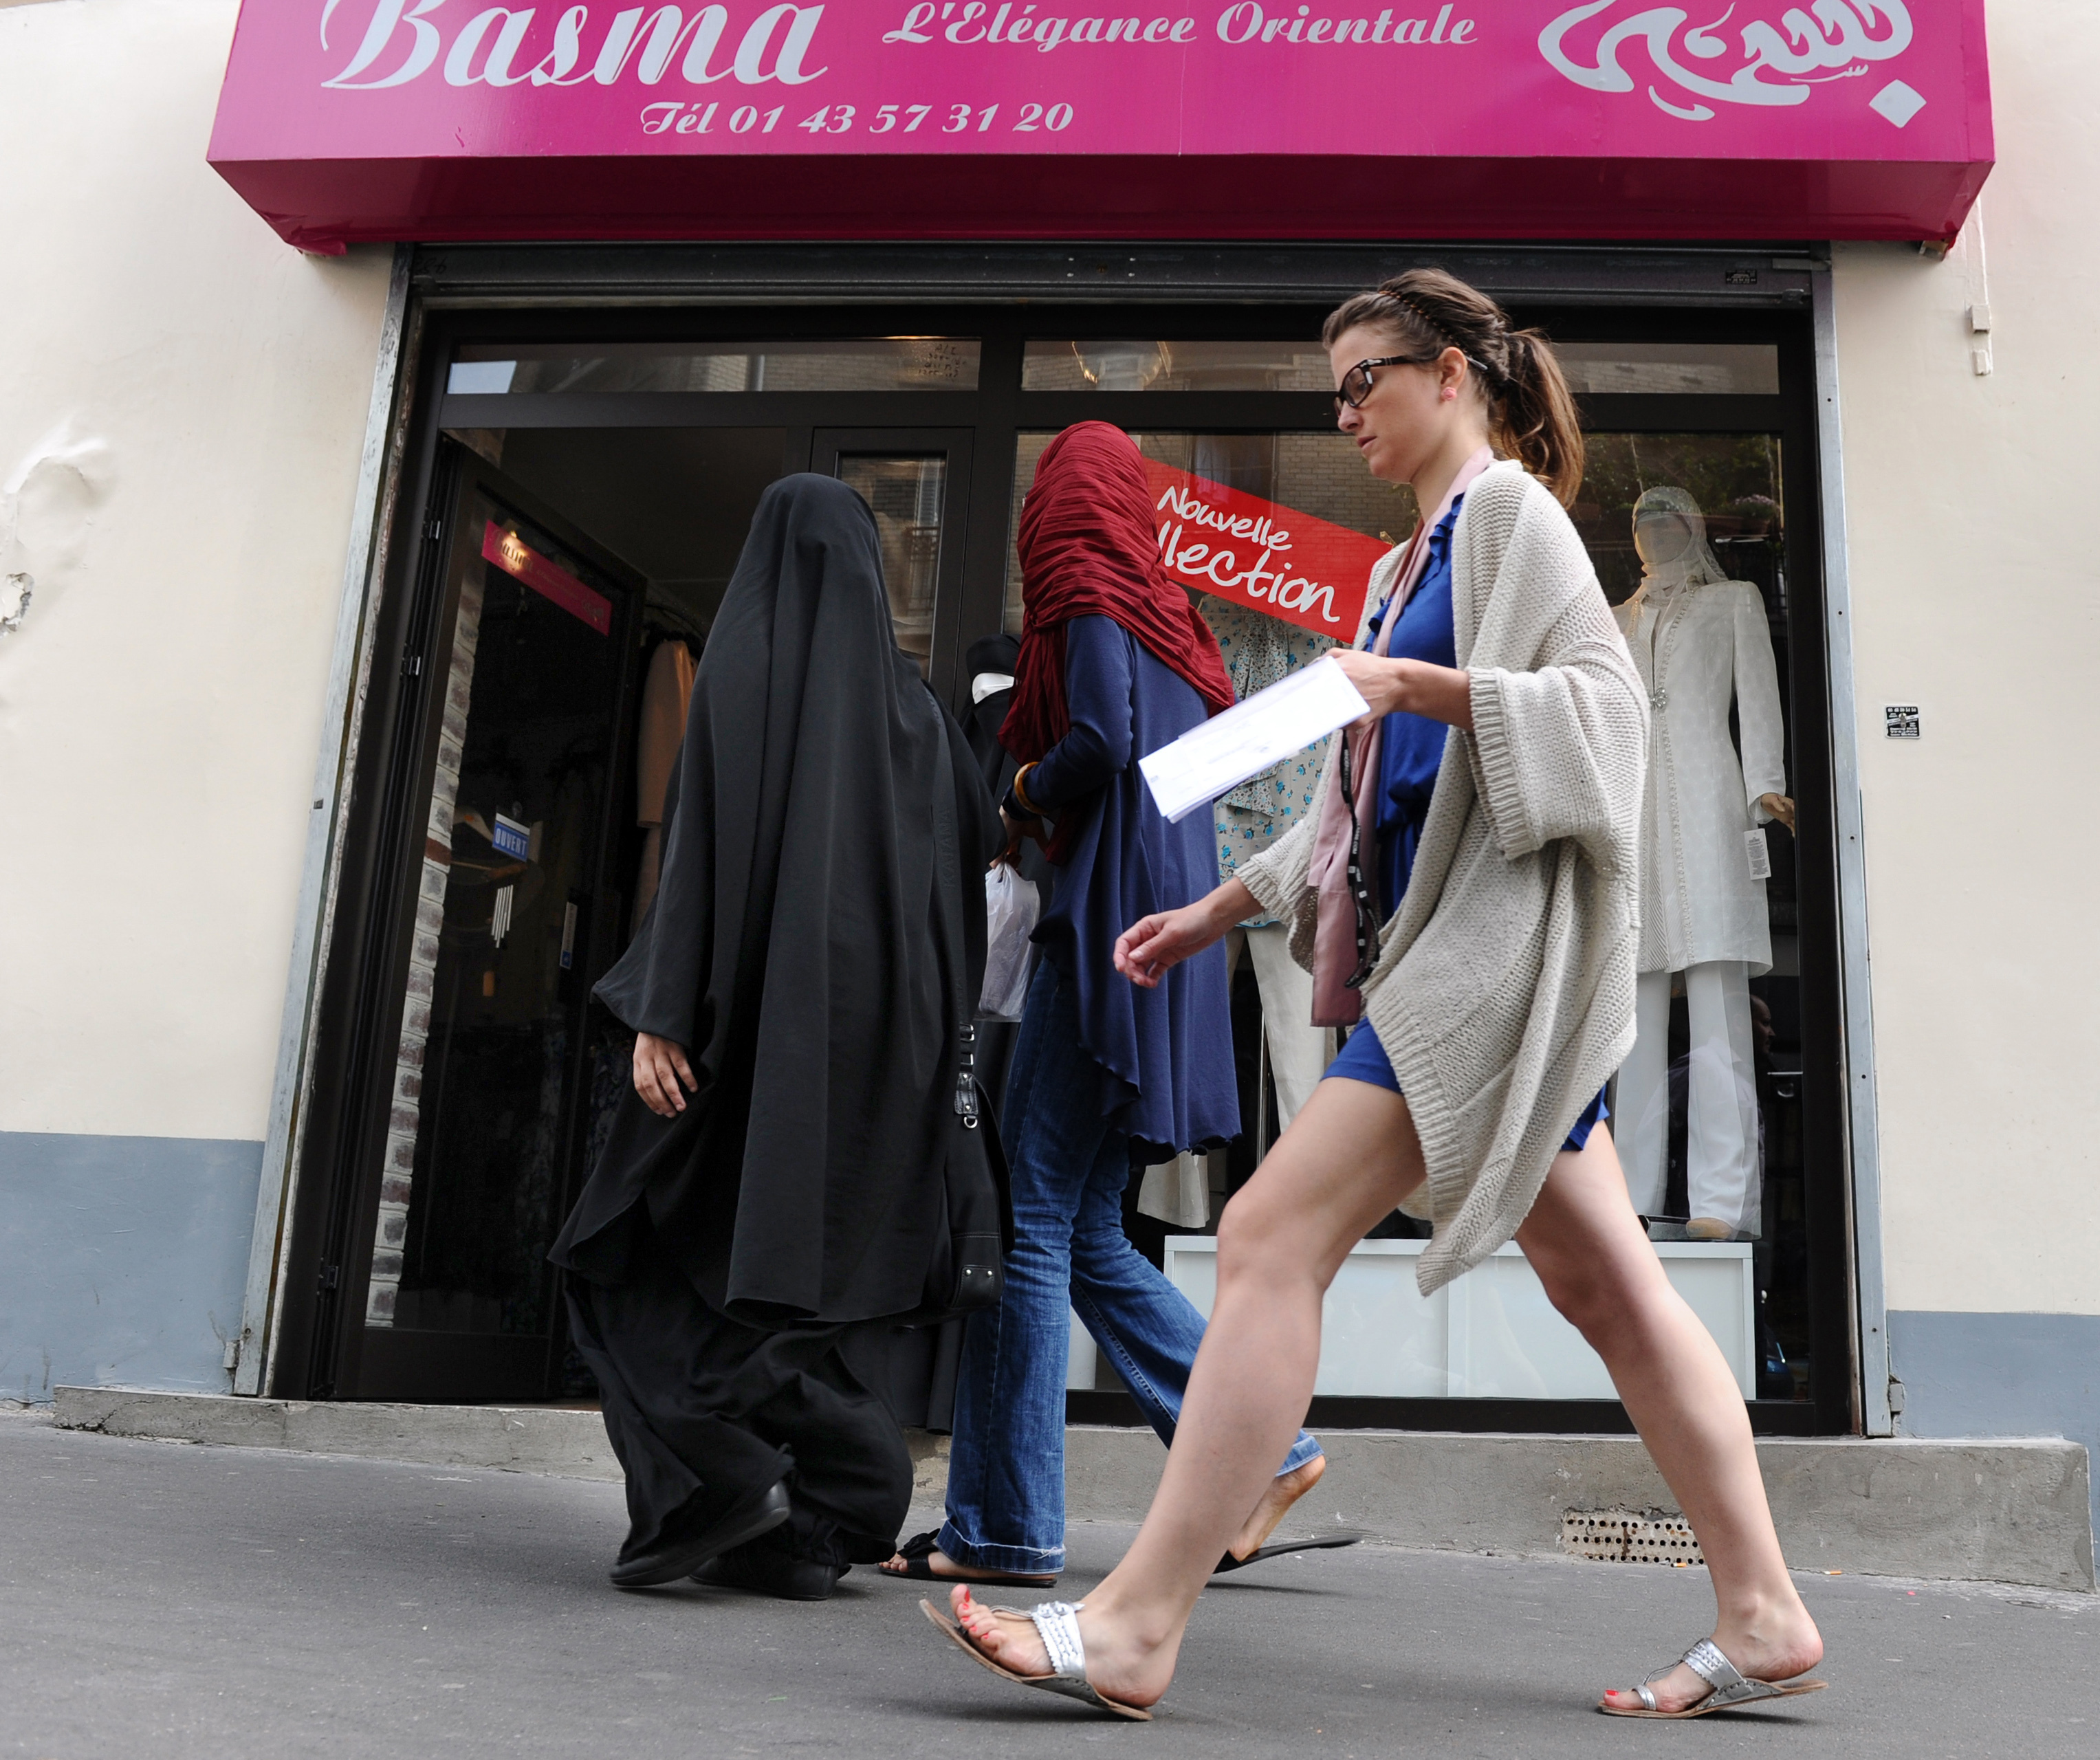 beardsley single muslim girls By barbara f walter over the past few years, approximately 550 young muslim women have left europe to join islamist groups in syria and iraq, often marrying fighters.